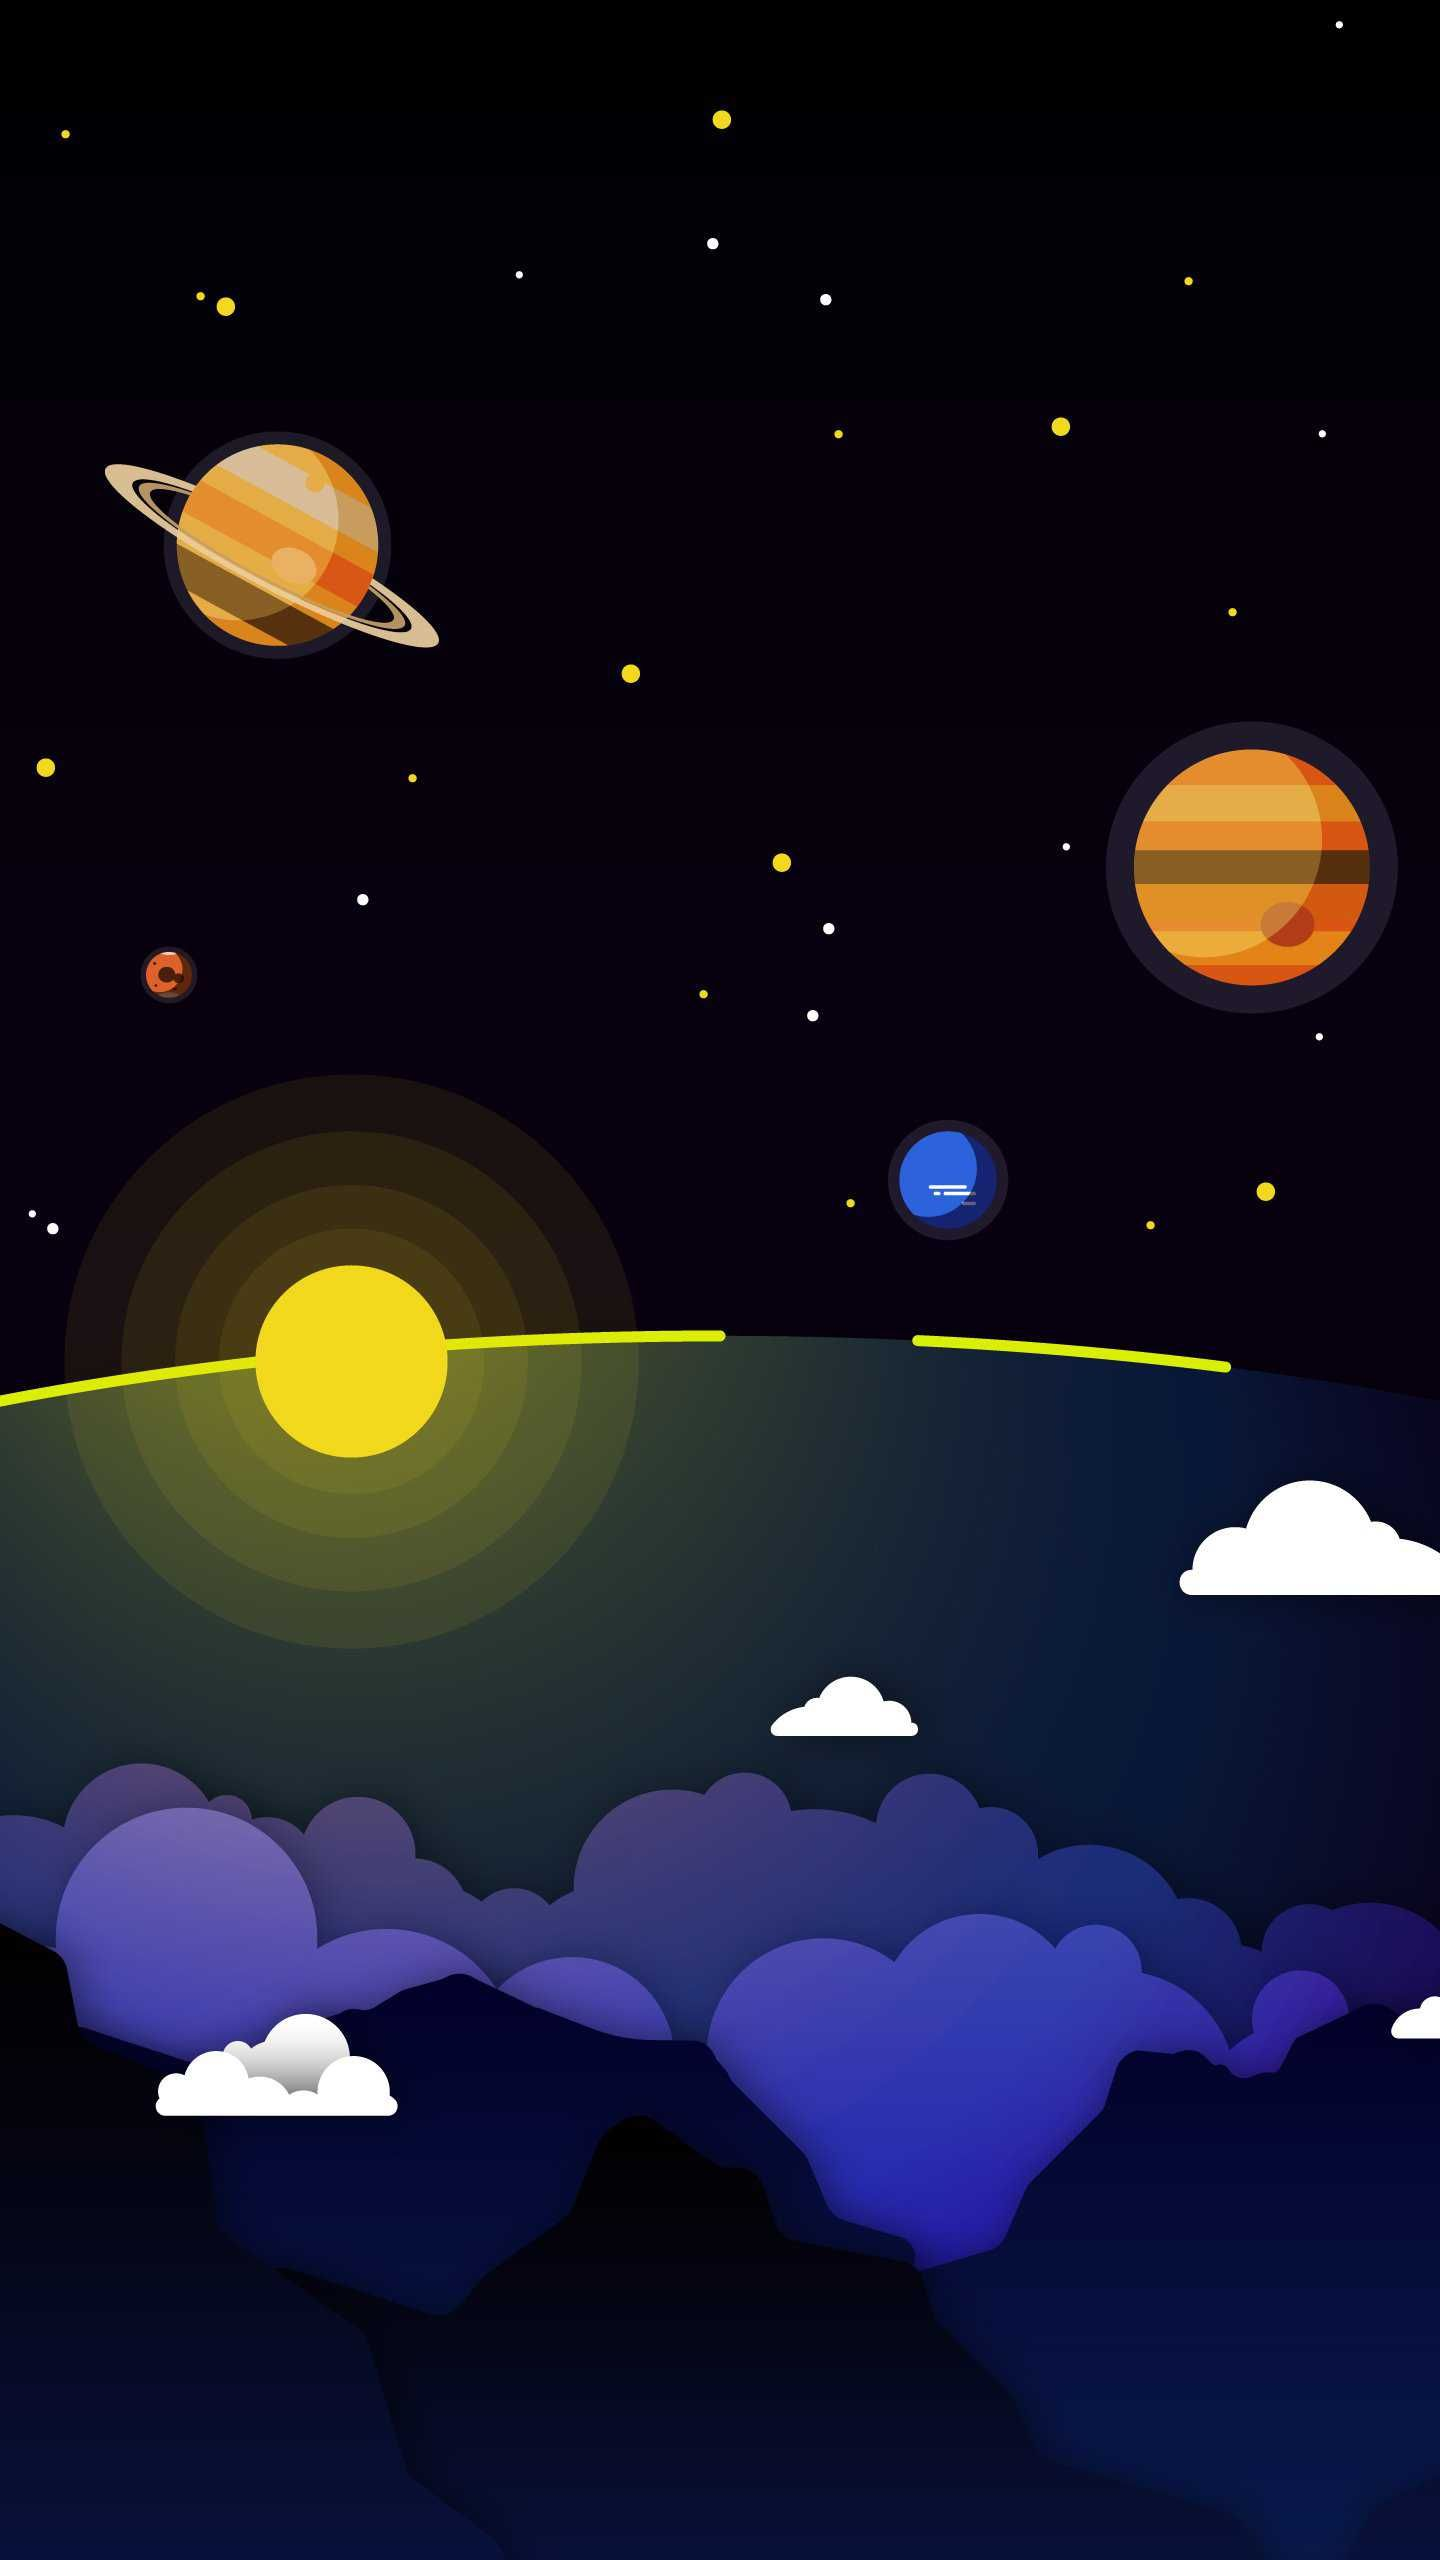 1440x2560 Minimal Solar System Clouds Planets iPhone Wallpaper ...